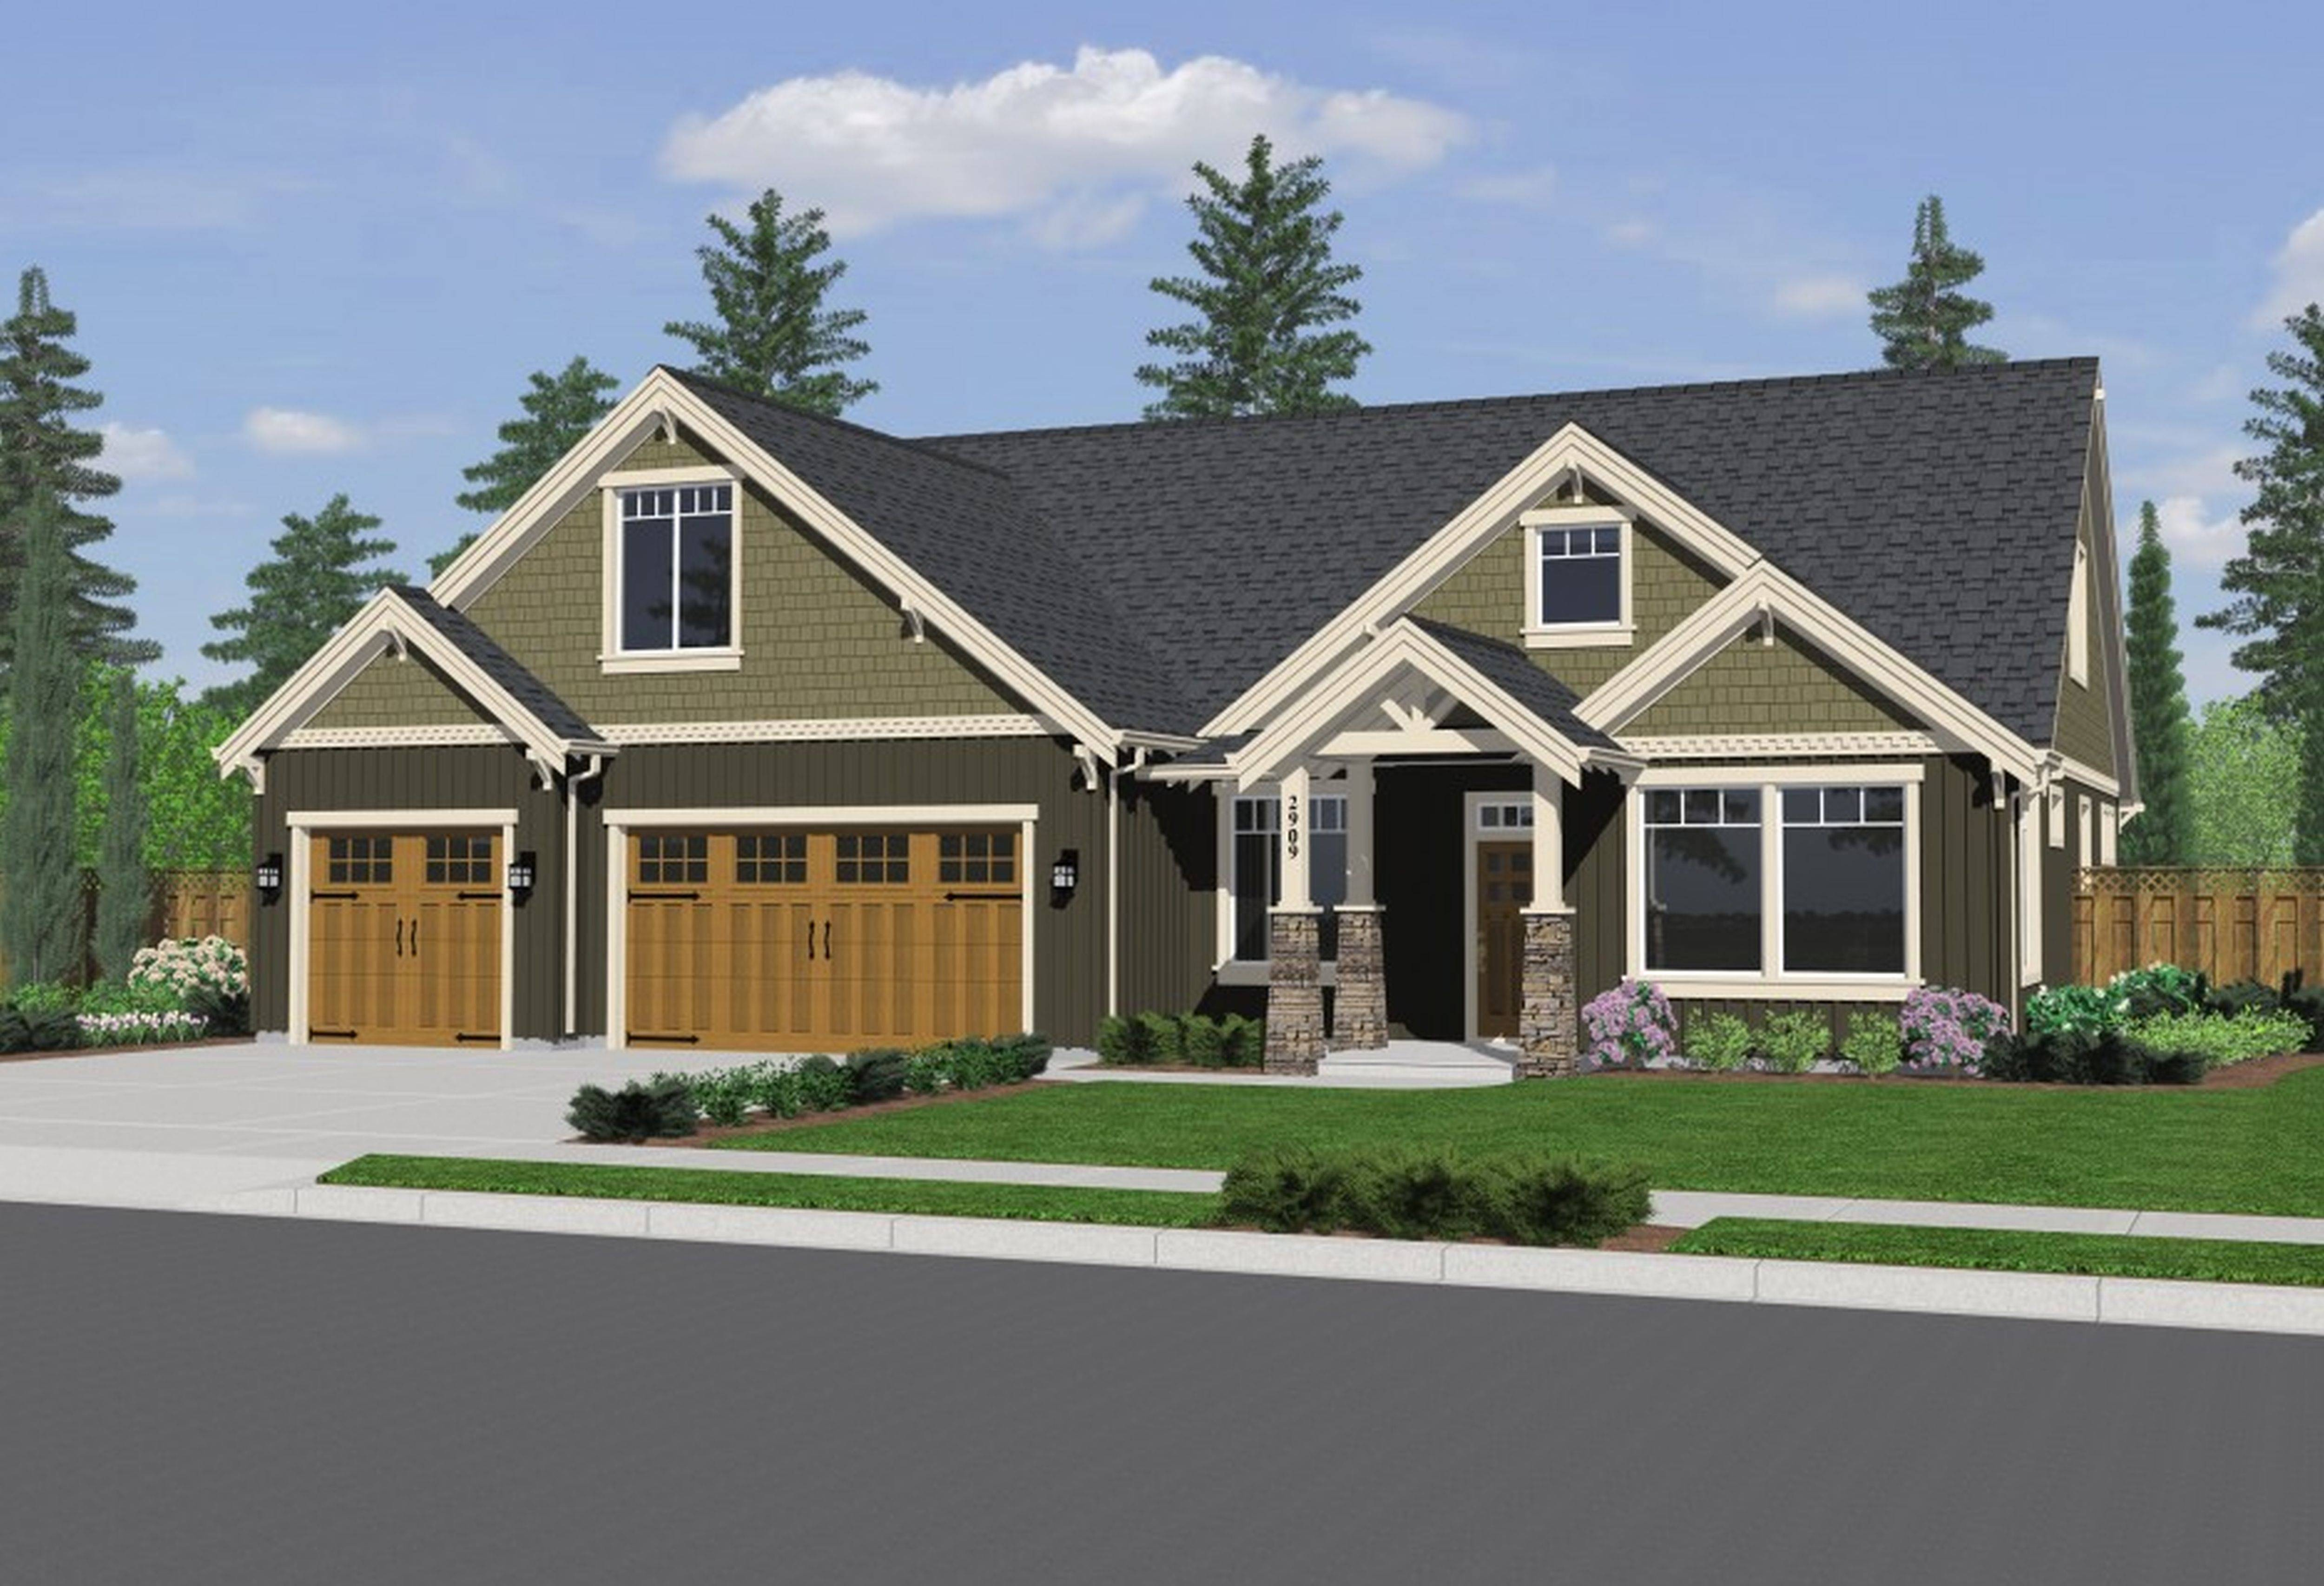 Latest House Outdoor Color Has Gray Exterior